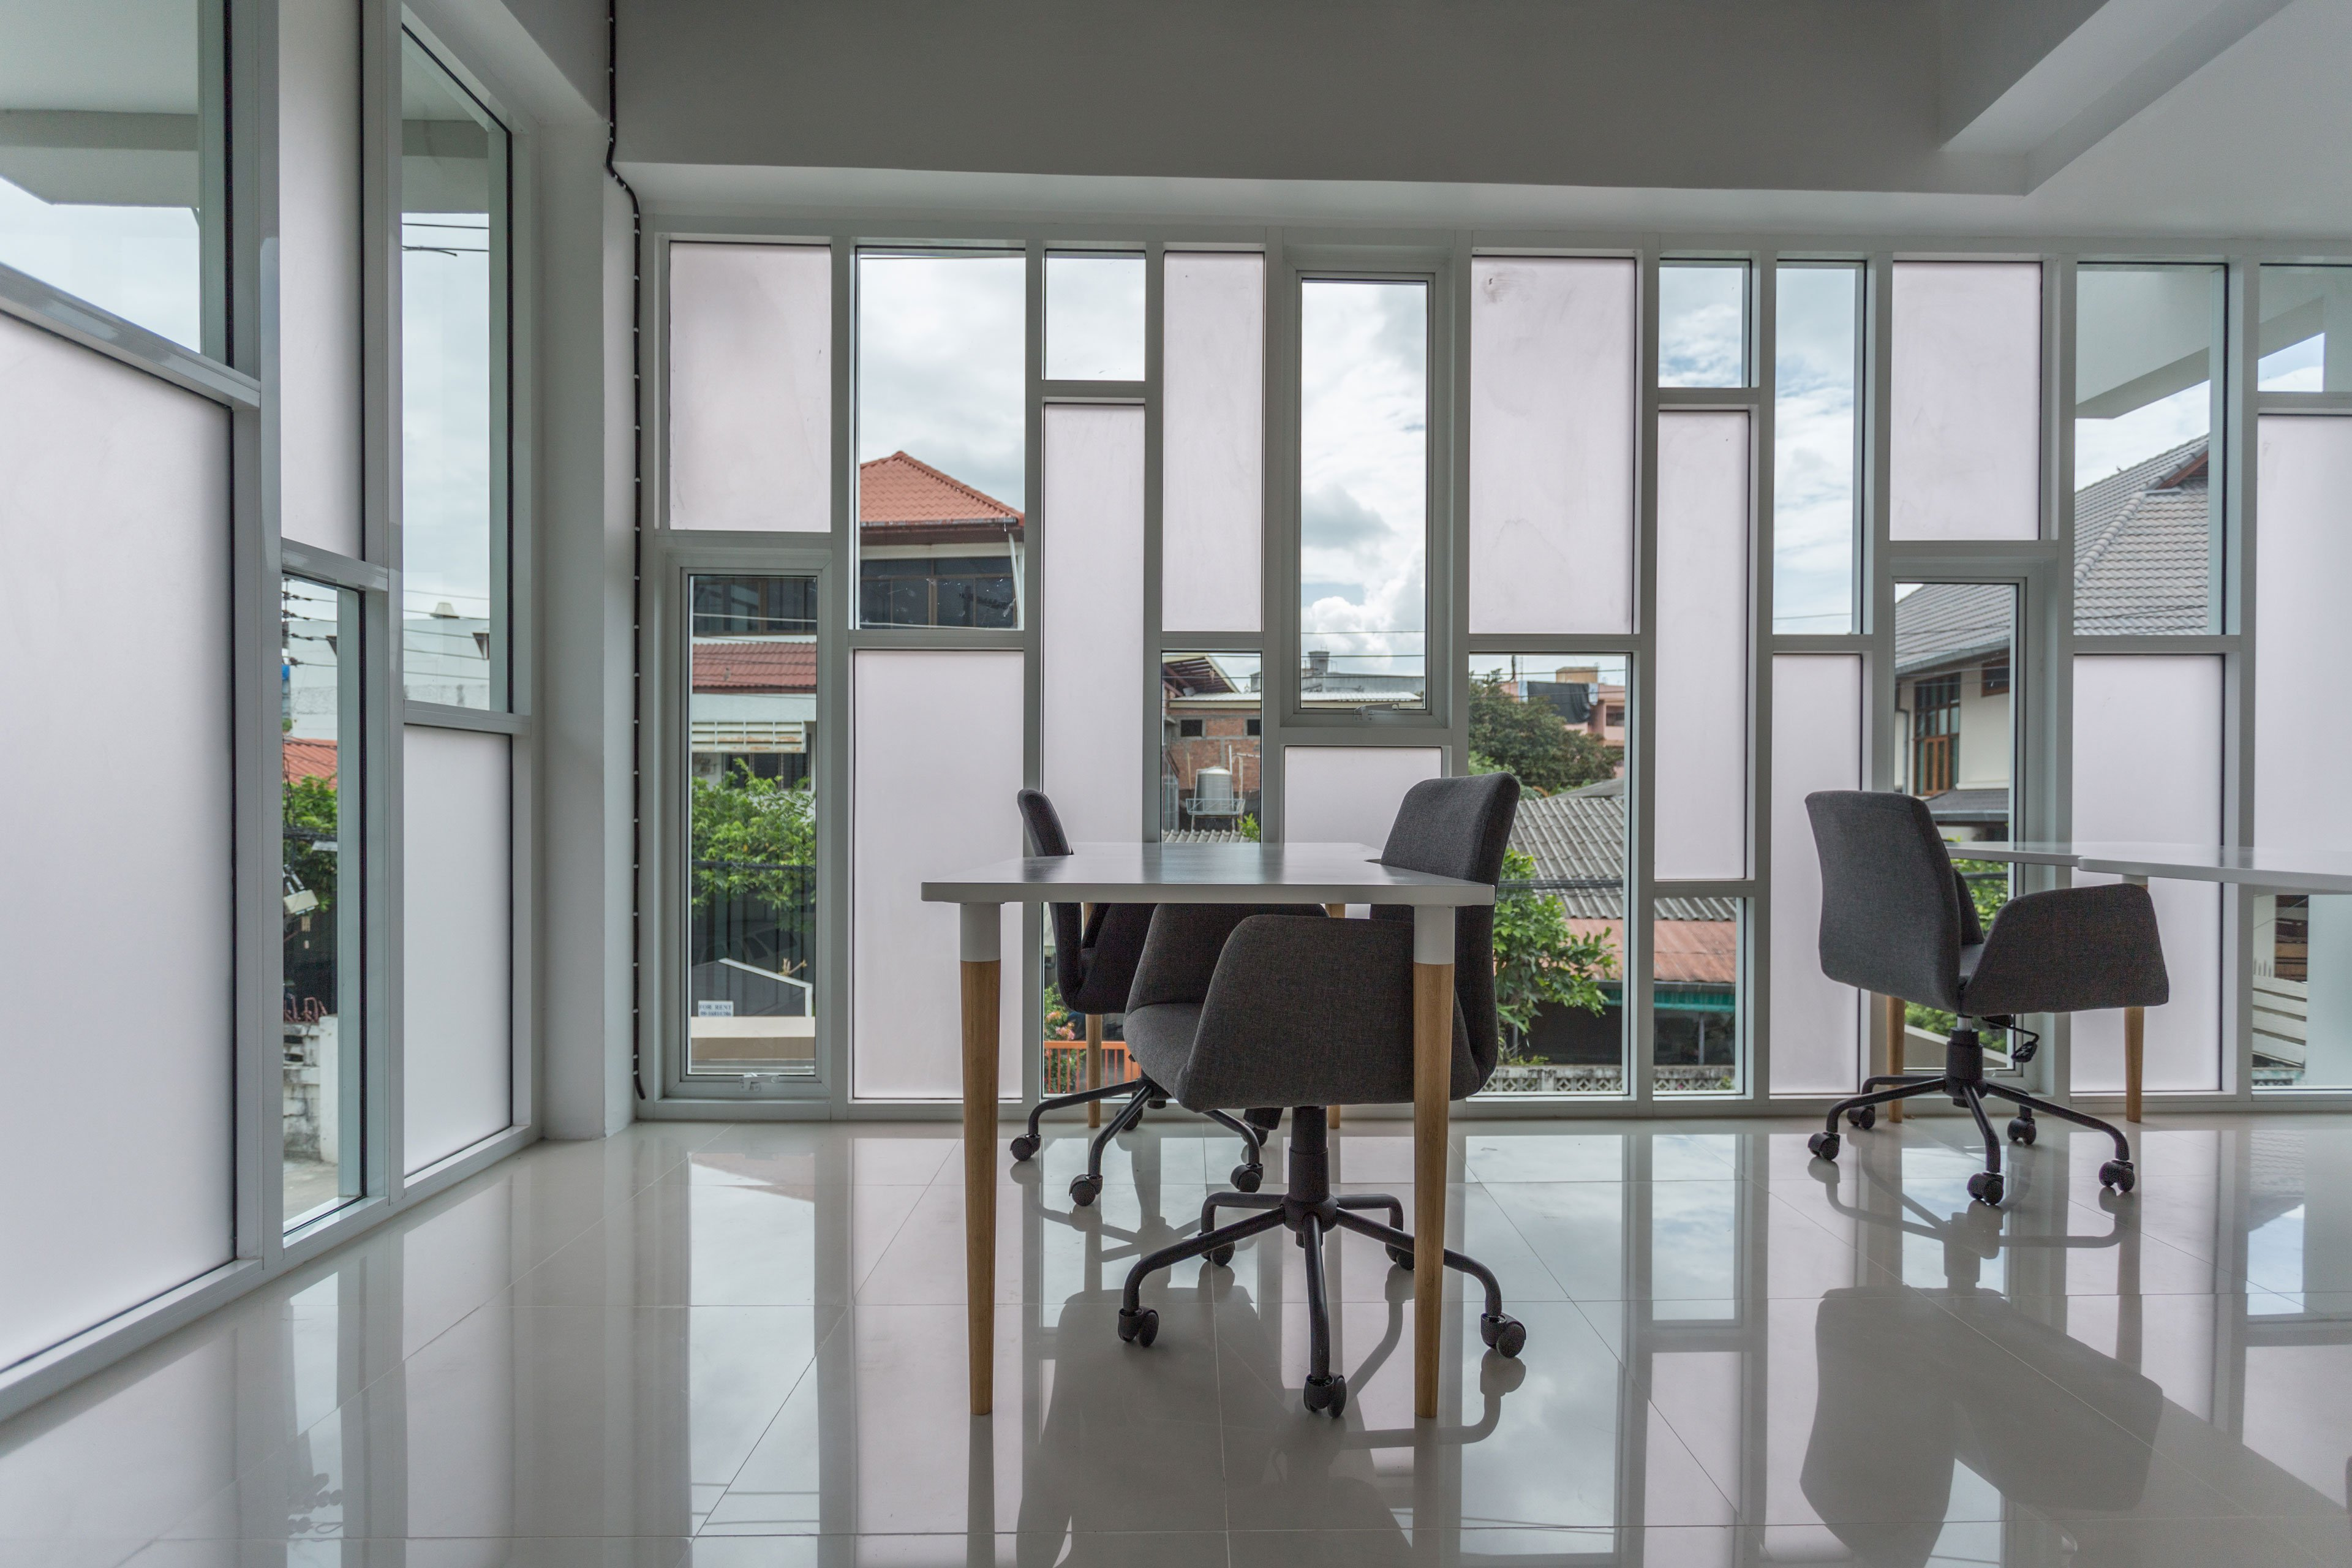 The Latest Iglu Office Space at Nimman in Chiang Mai